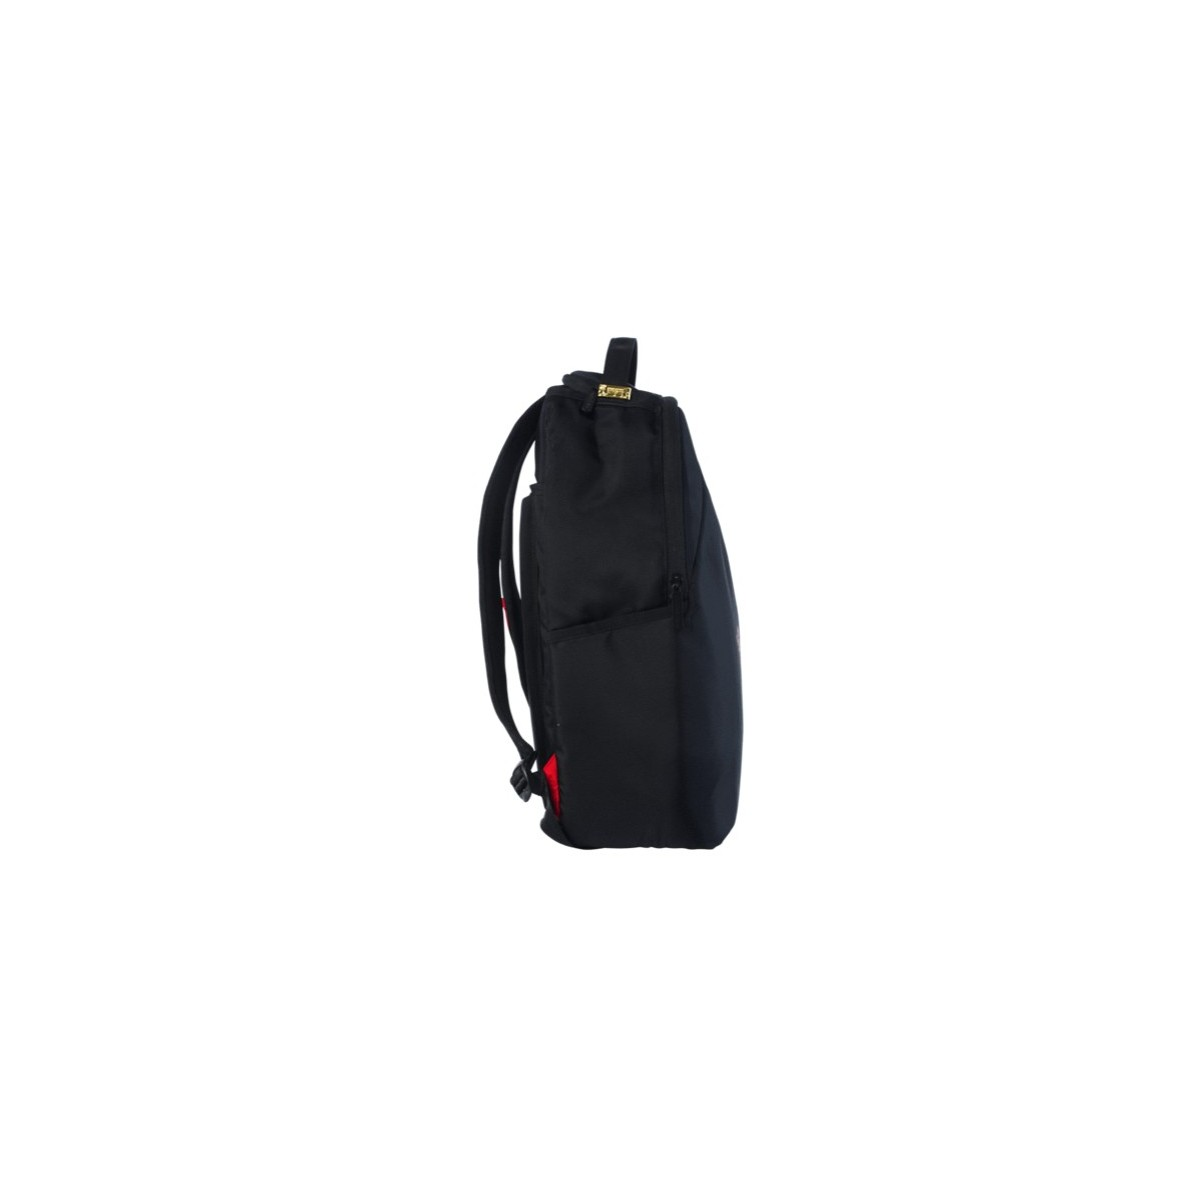 Backpack - Sprayground Angled ghost shark